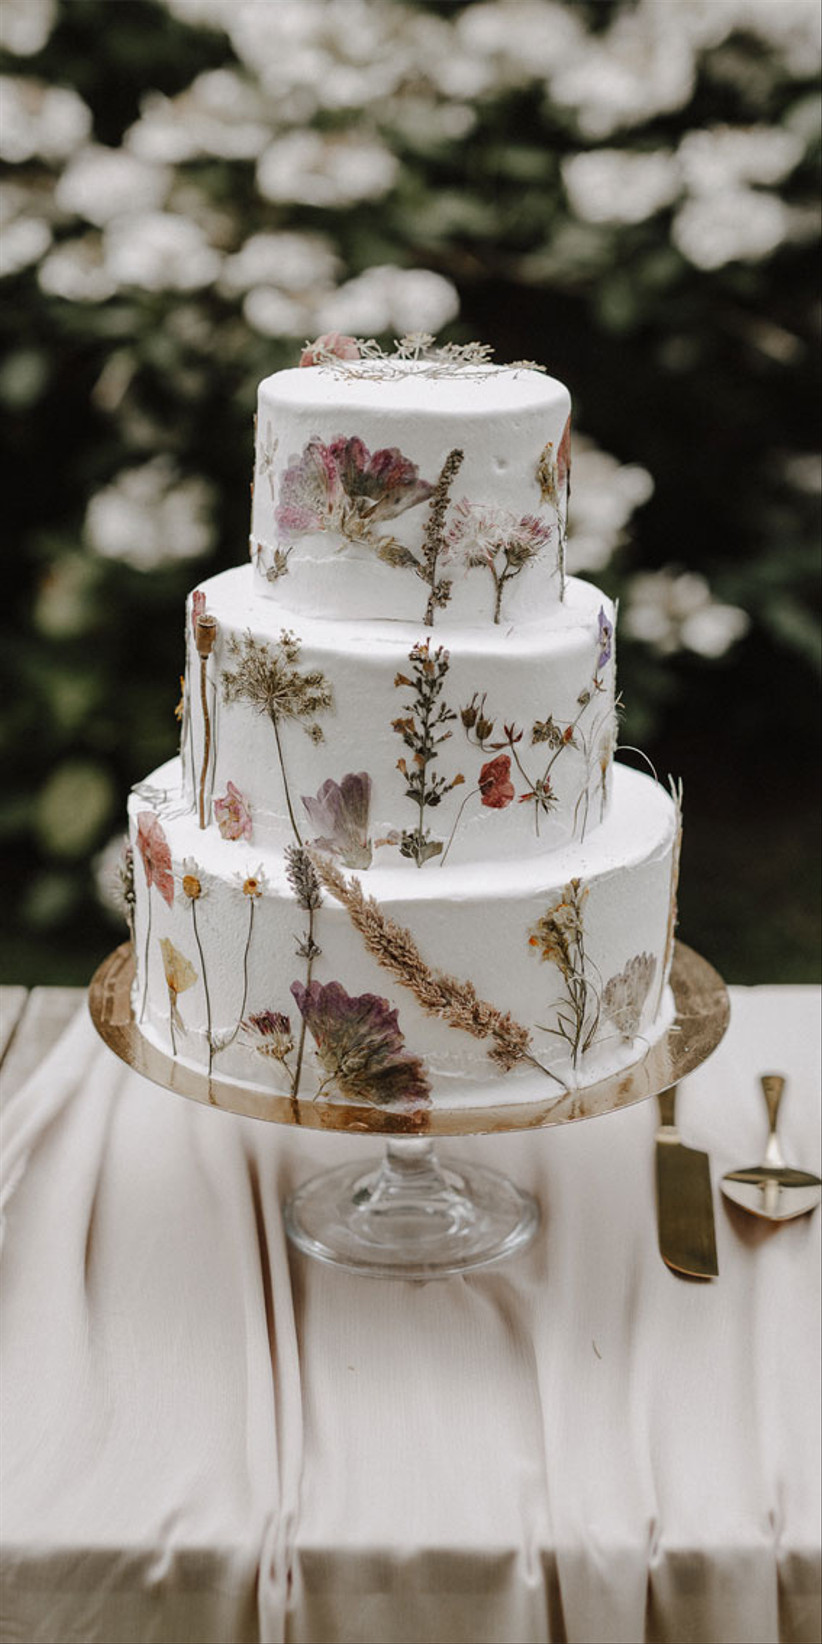 Three tiered white fondant rustic wedding cake with dried flowers